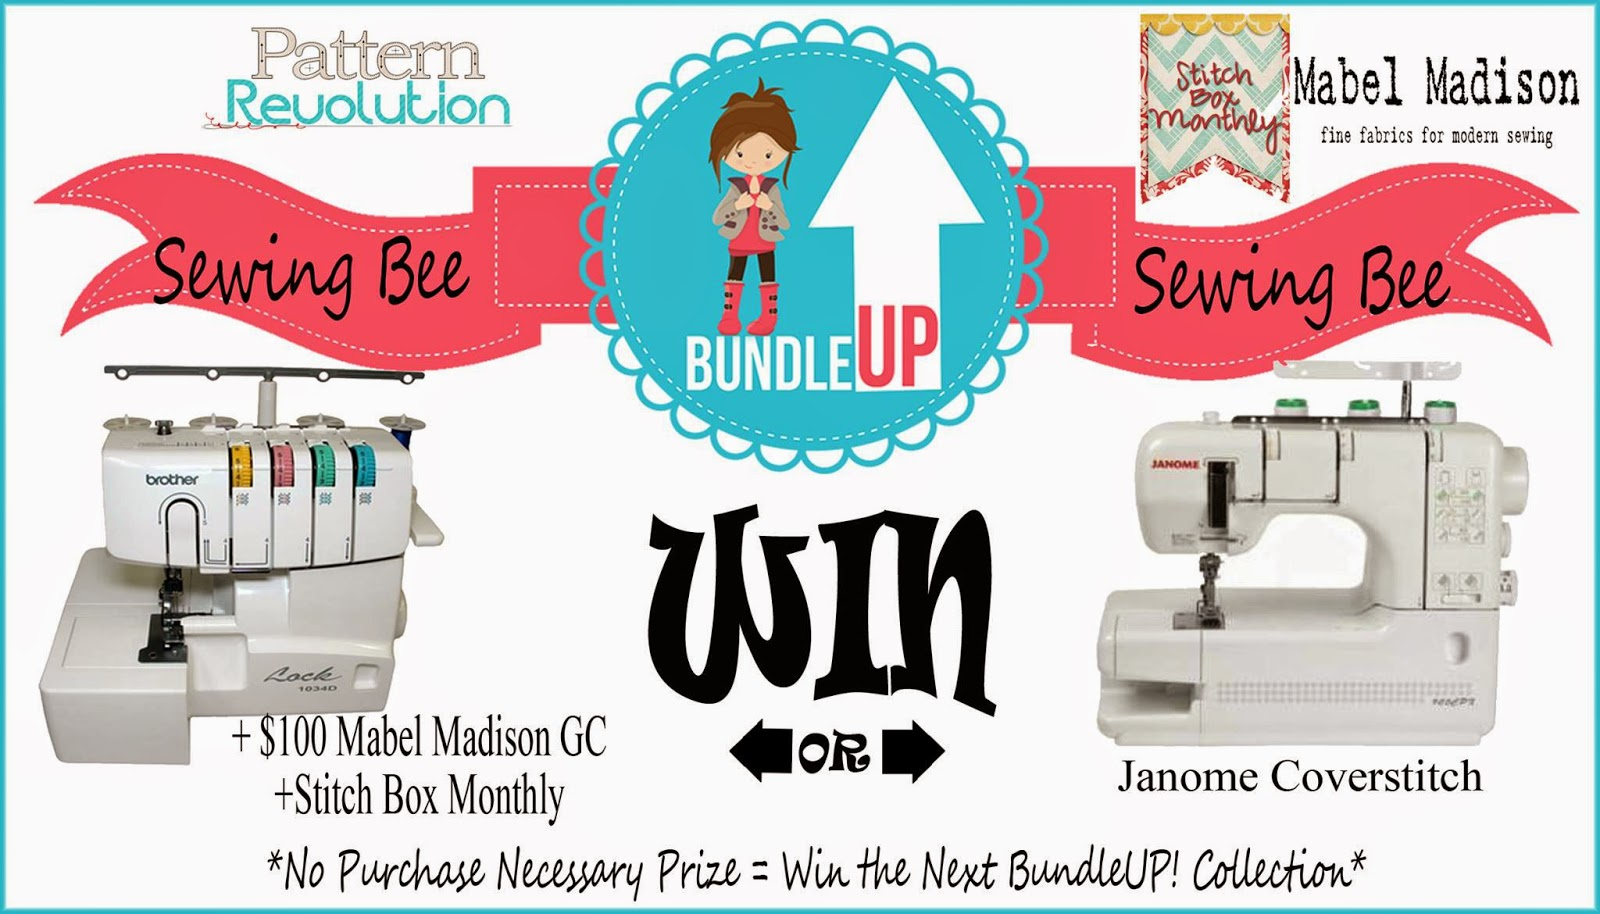 http://patternrevolution.com/blog/2015/1/22/bundle-up-sewing-bee-and-giveaway